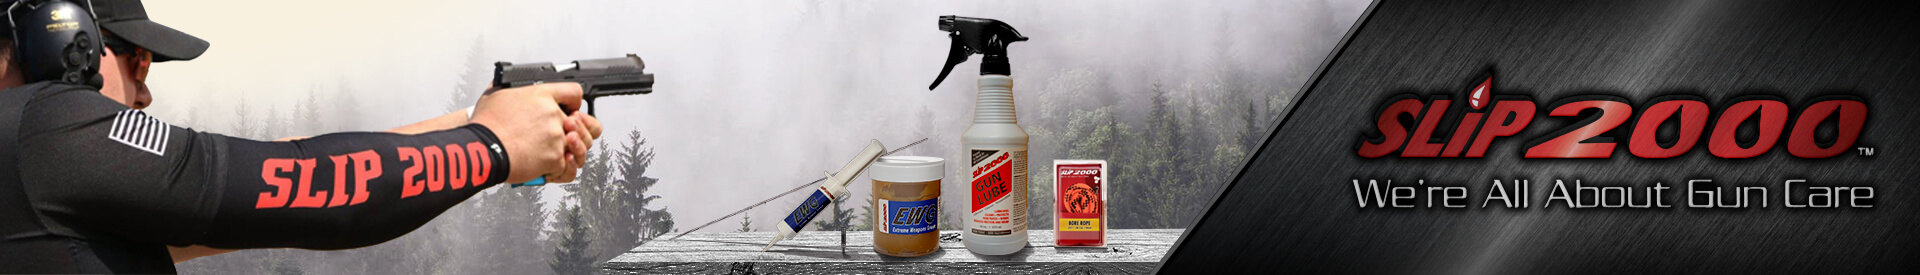 SLIP 2000 the absolute best, safest and most cost-effective gun care product line the Gun industry.